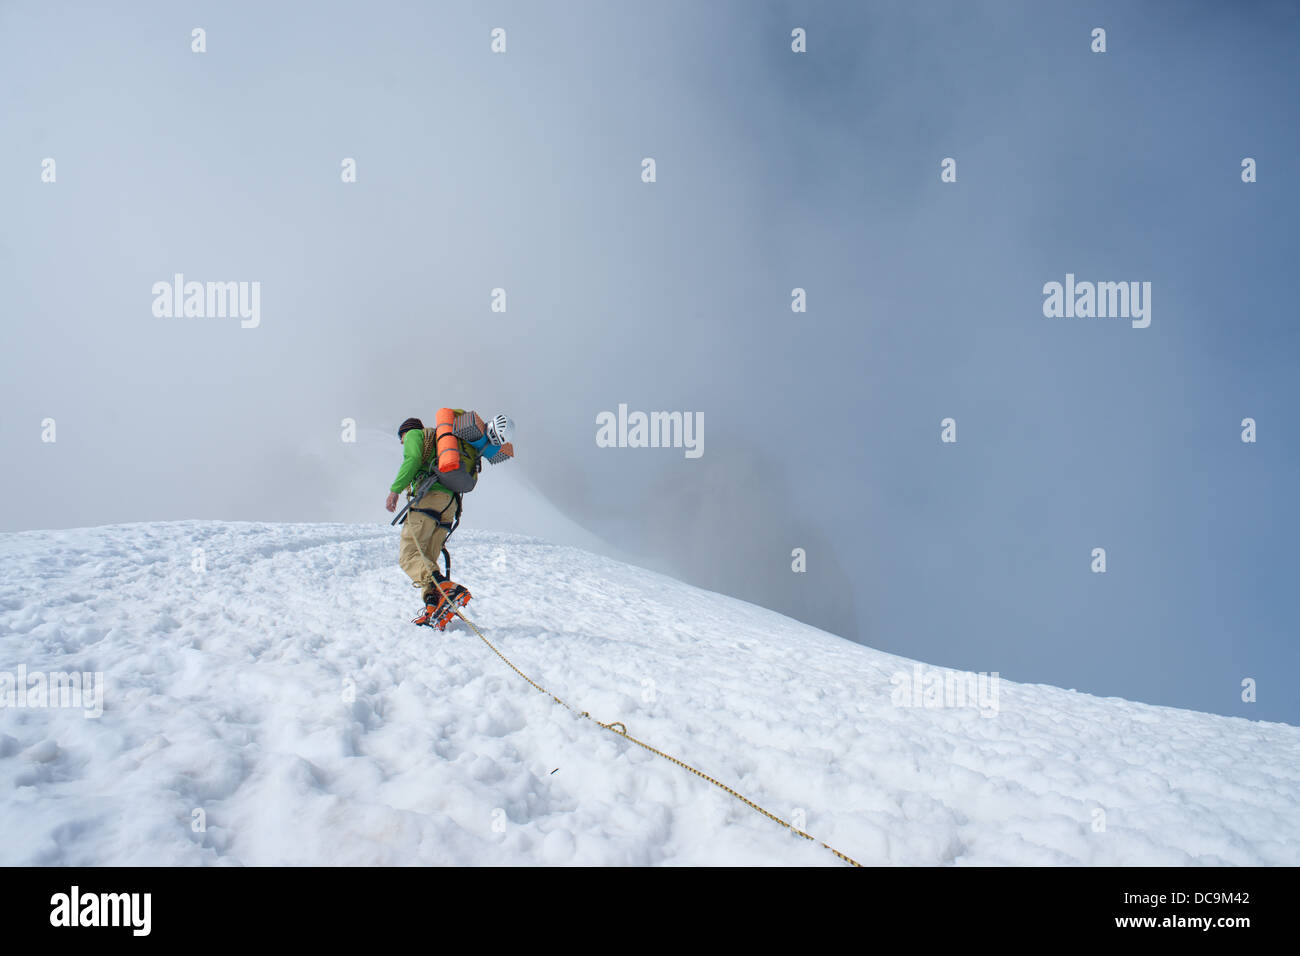 Low view on alpinist during alpine ascent to Aiguille du Midi cable car station from Vallee Blanche in clowdy conditions. - Stock Image